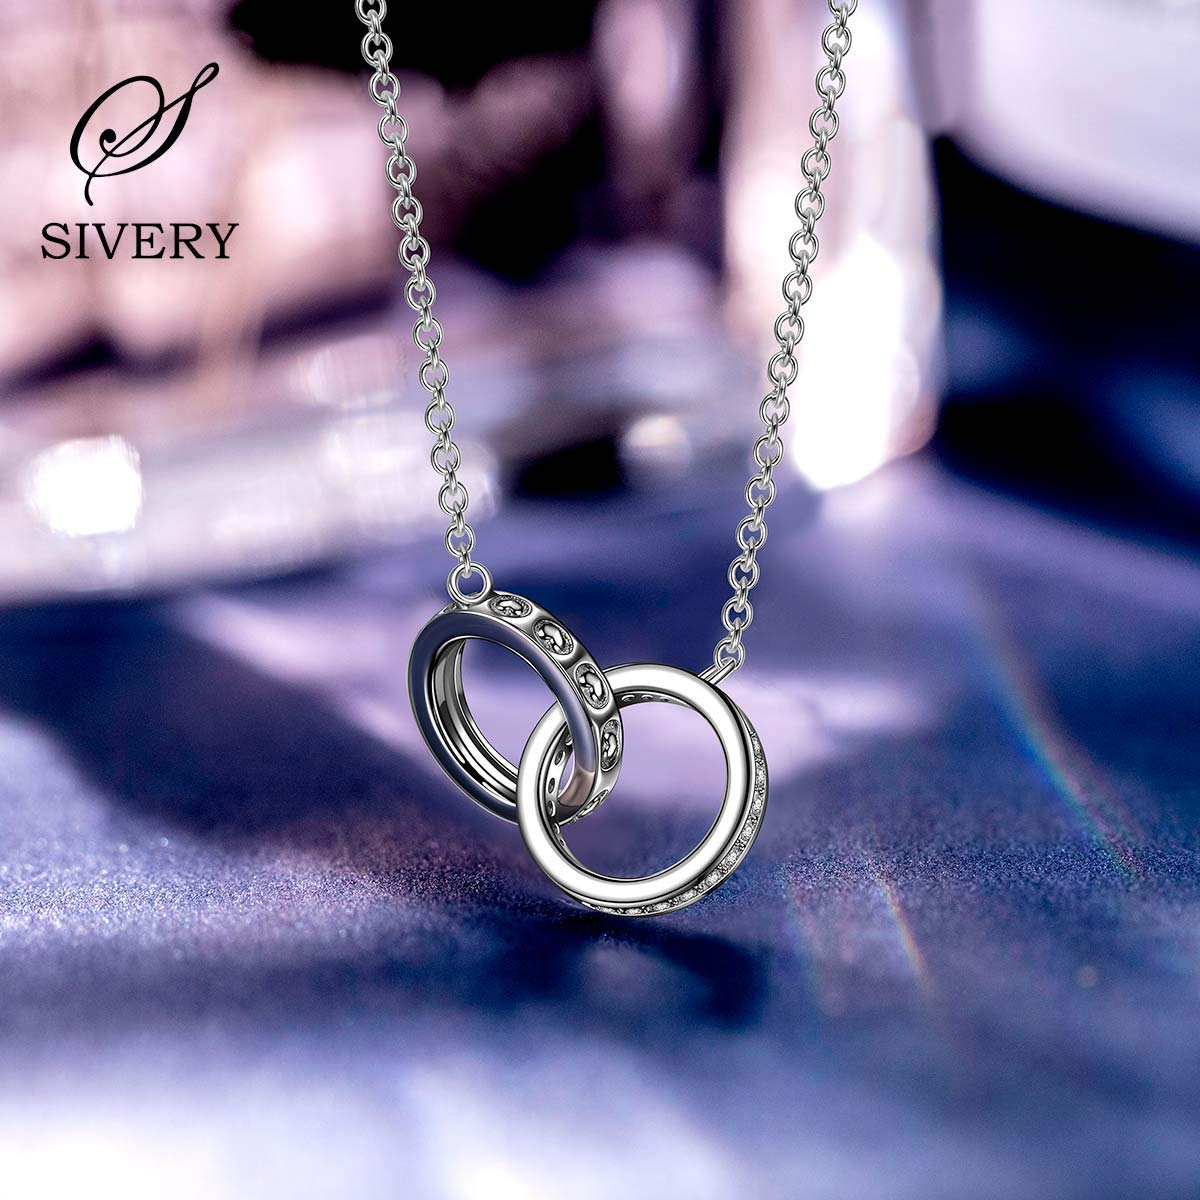 Hypoallergenic 925 Sterling Silver Necklace Pendant Gifts for Mom Birthday Gifts for Her SIVERY Contract of Love Necklaces for Women